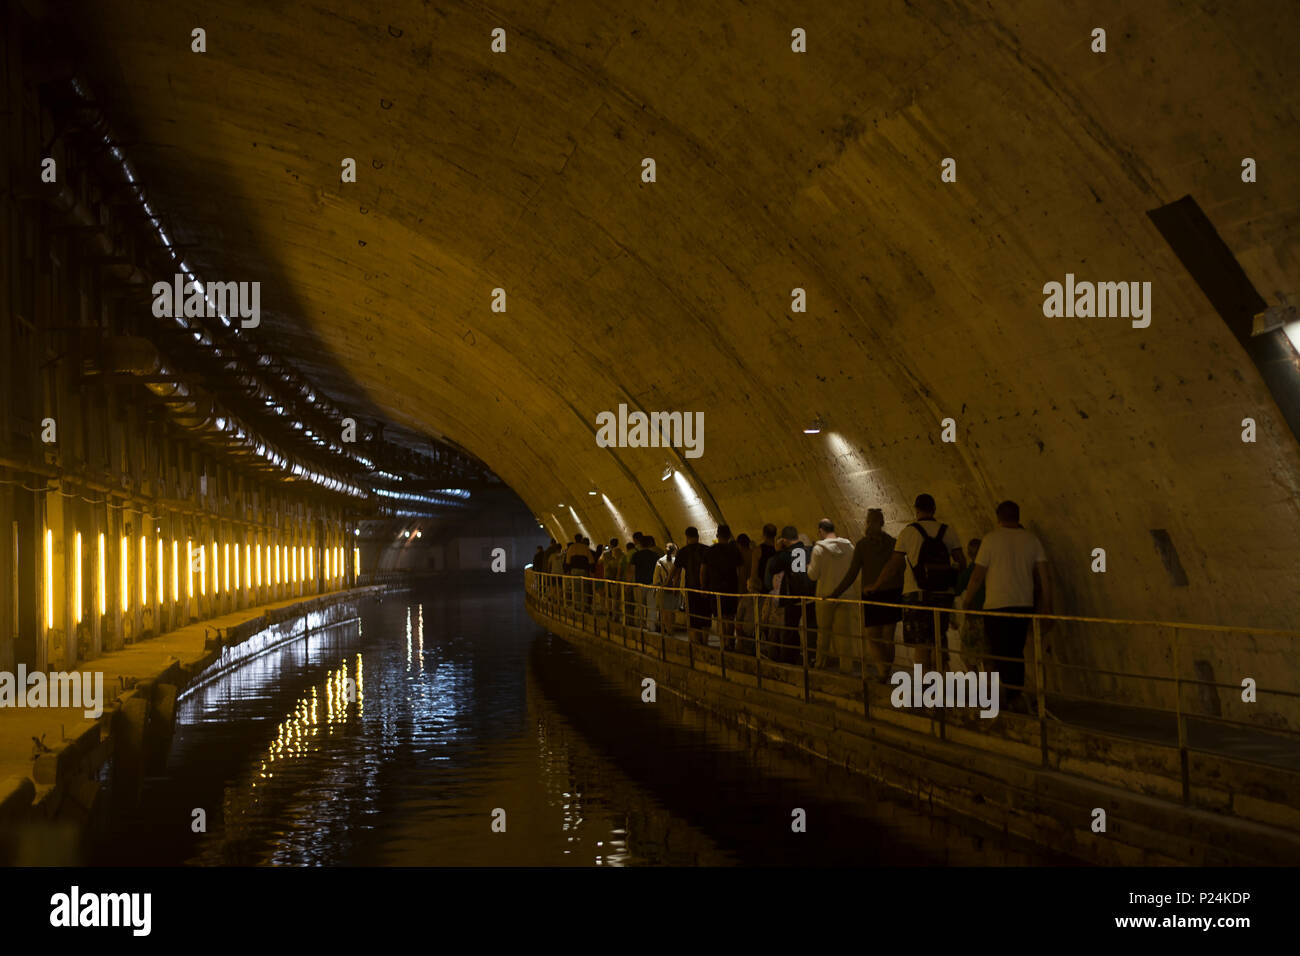 the concrete tunnel with water, the people going forward and reflection - Stock Image